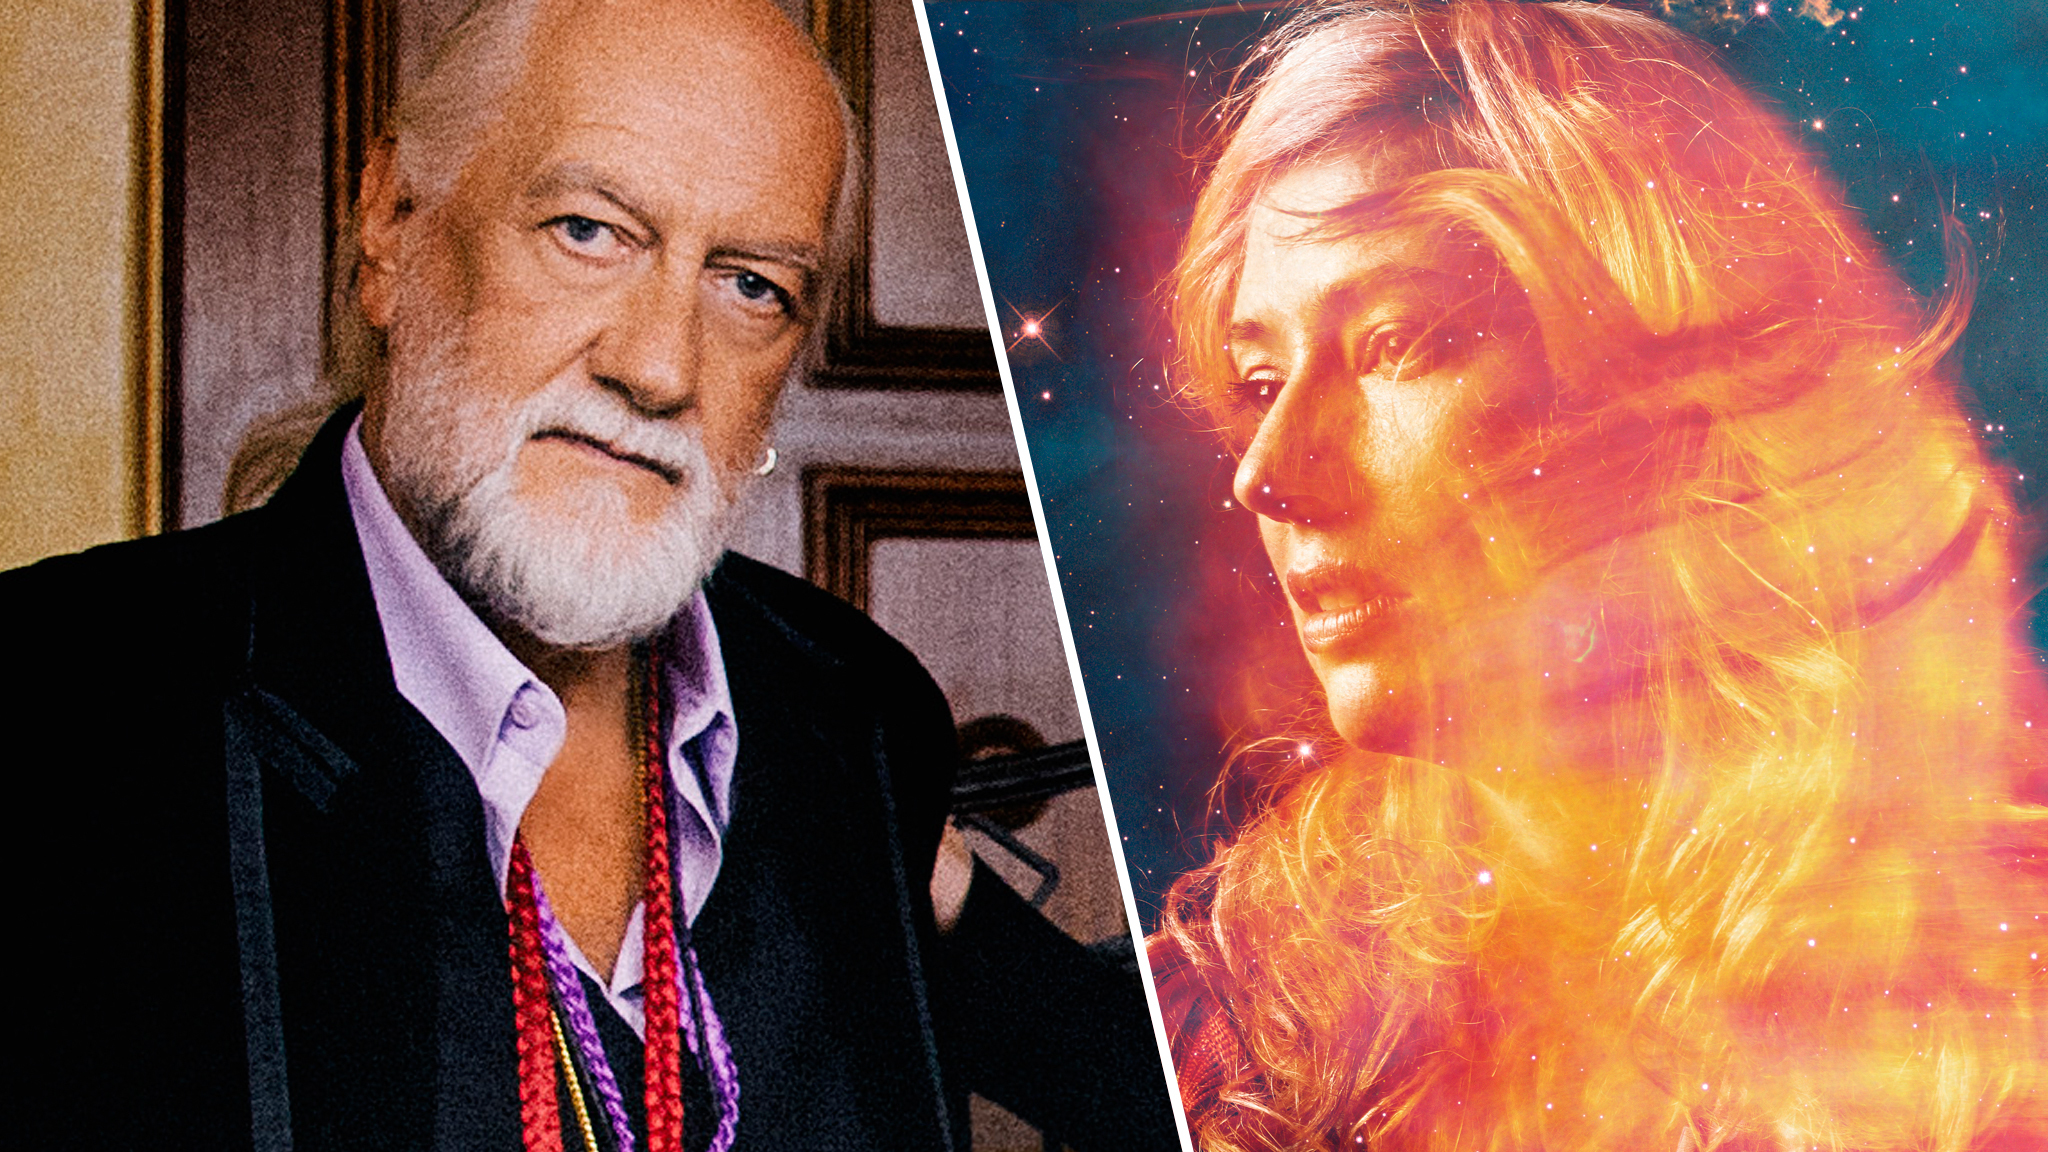 Fleetwood chat: Fleetmac Wood interviews Fleetwood Mac's Mick Fleetwood